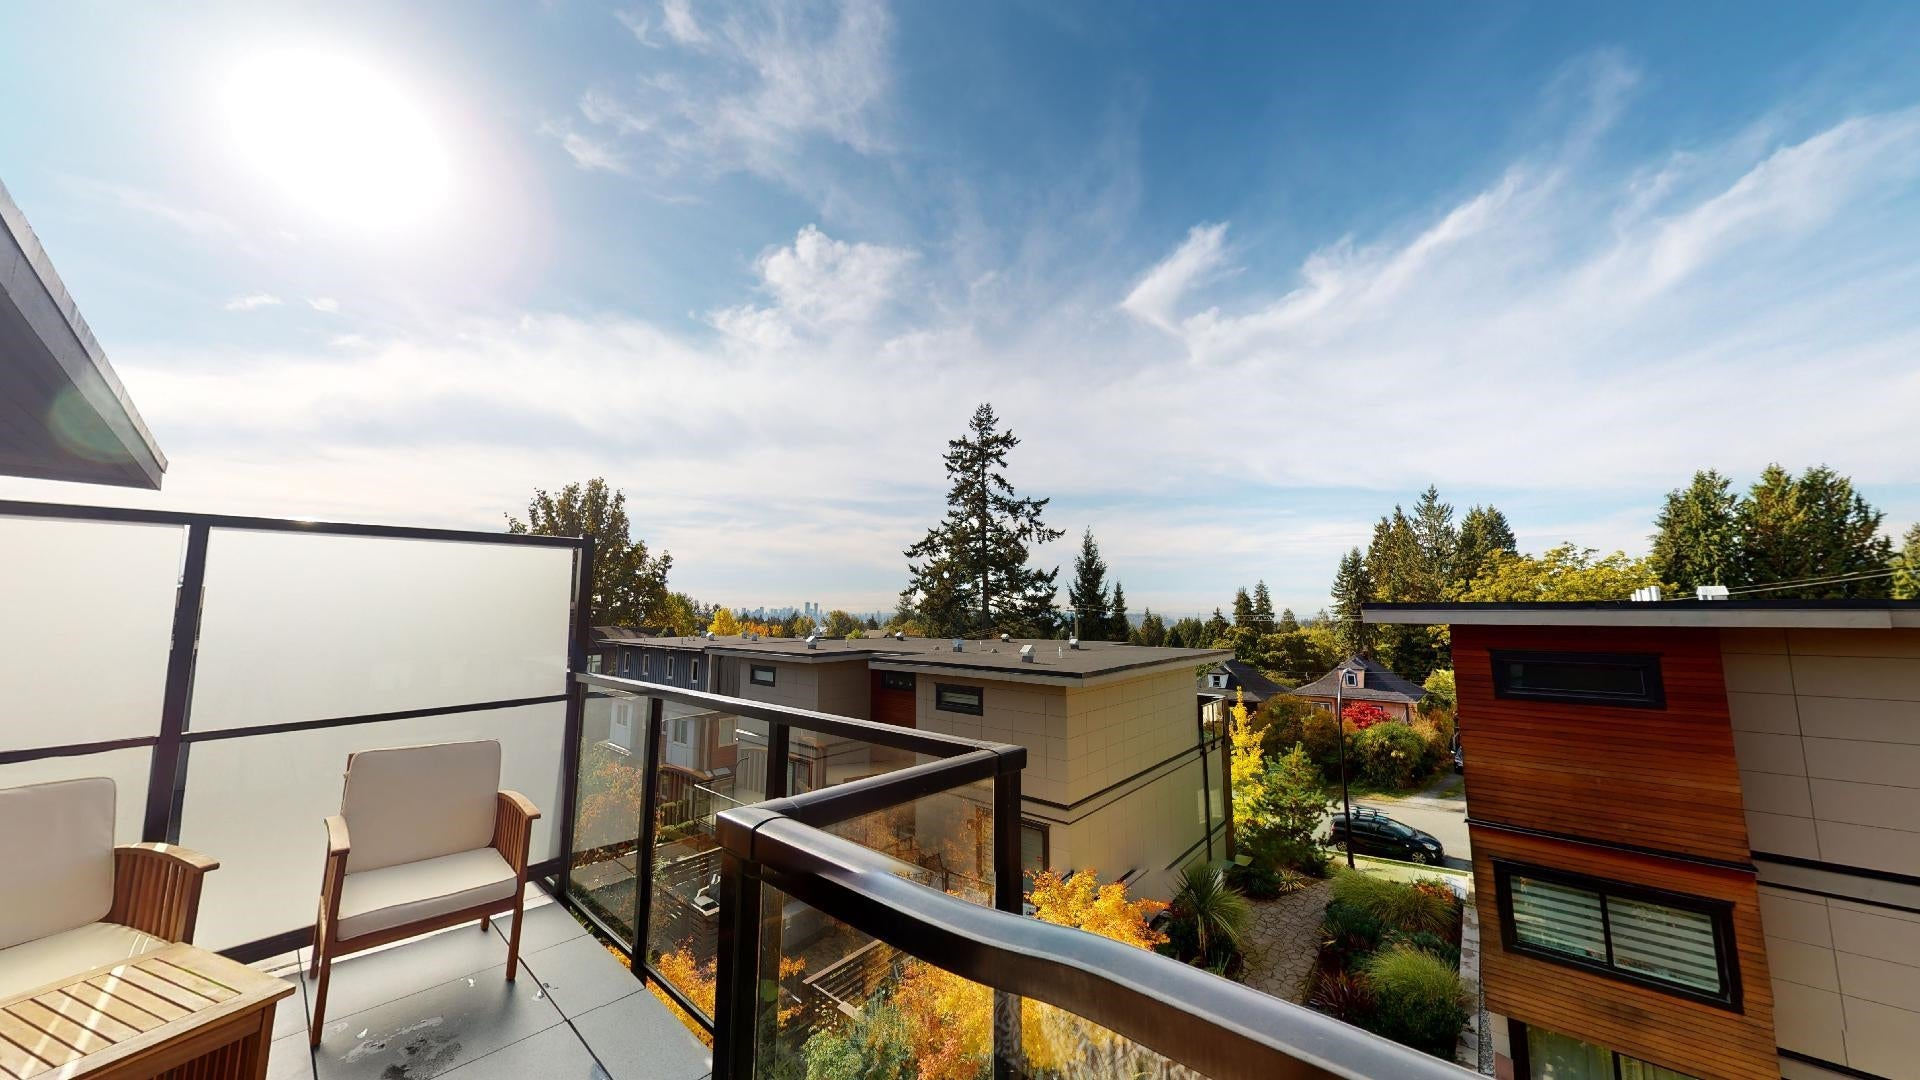 14 2358 WESTERN AVENUE - Central Lonsdale Townhouse for sale, 3 Bedrooms (R2628811) - #1